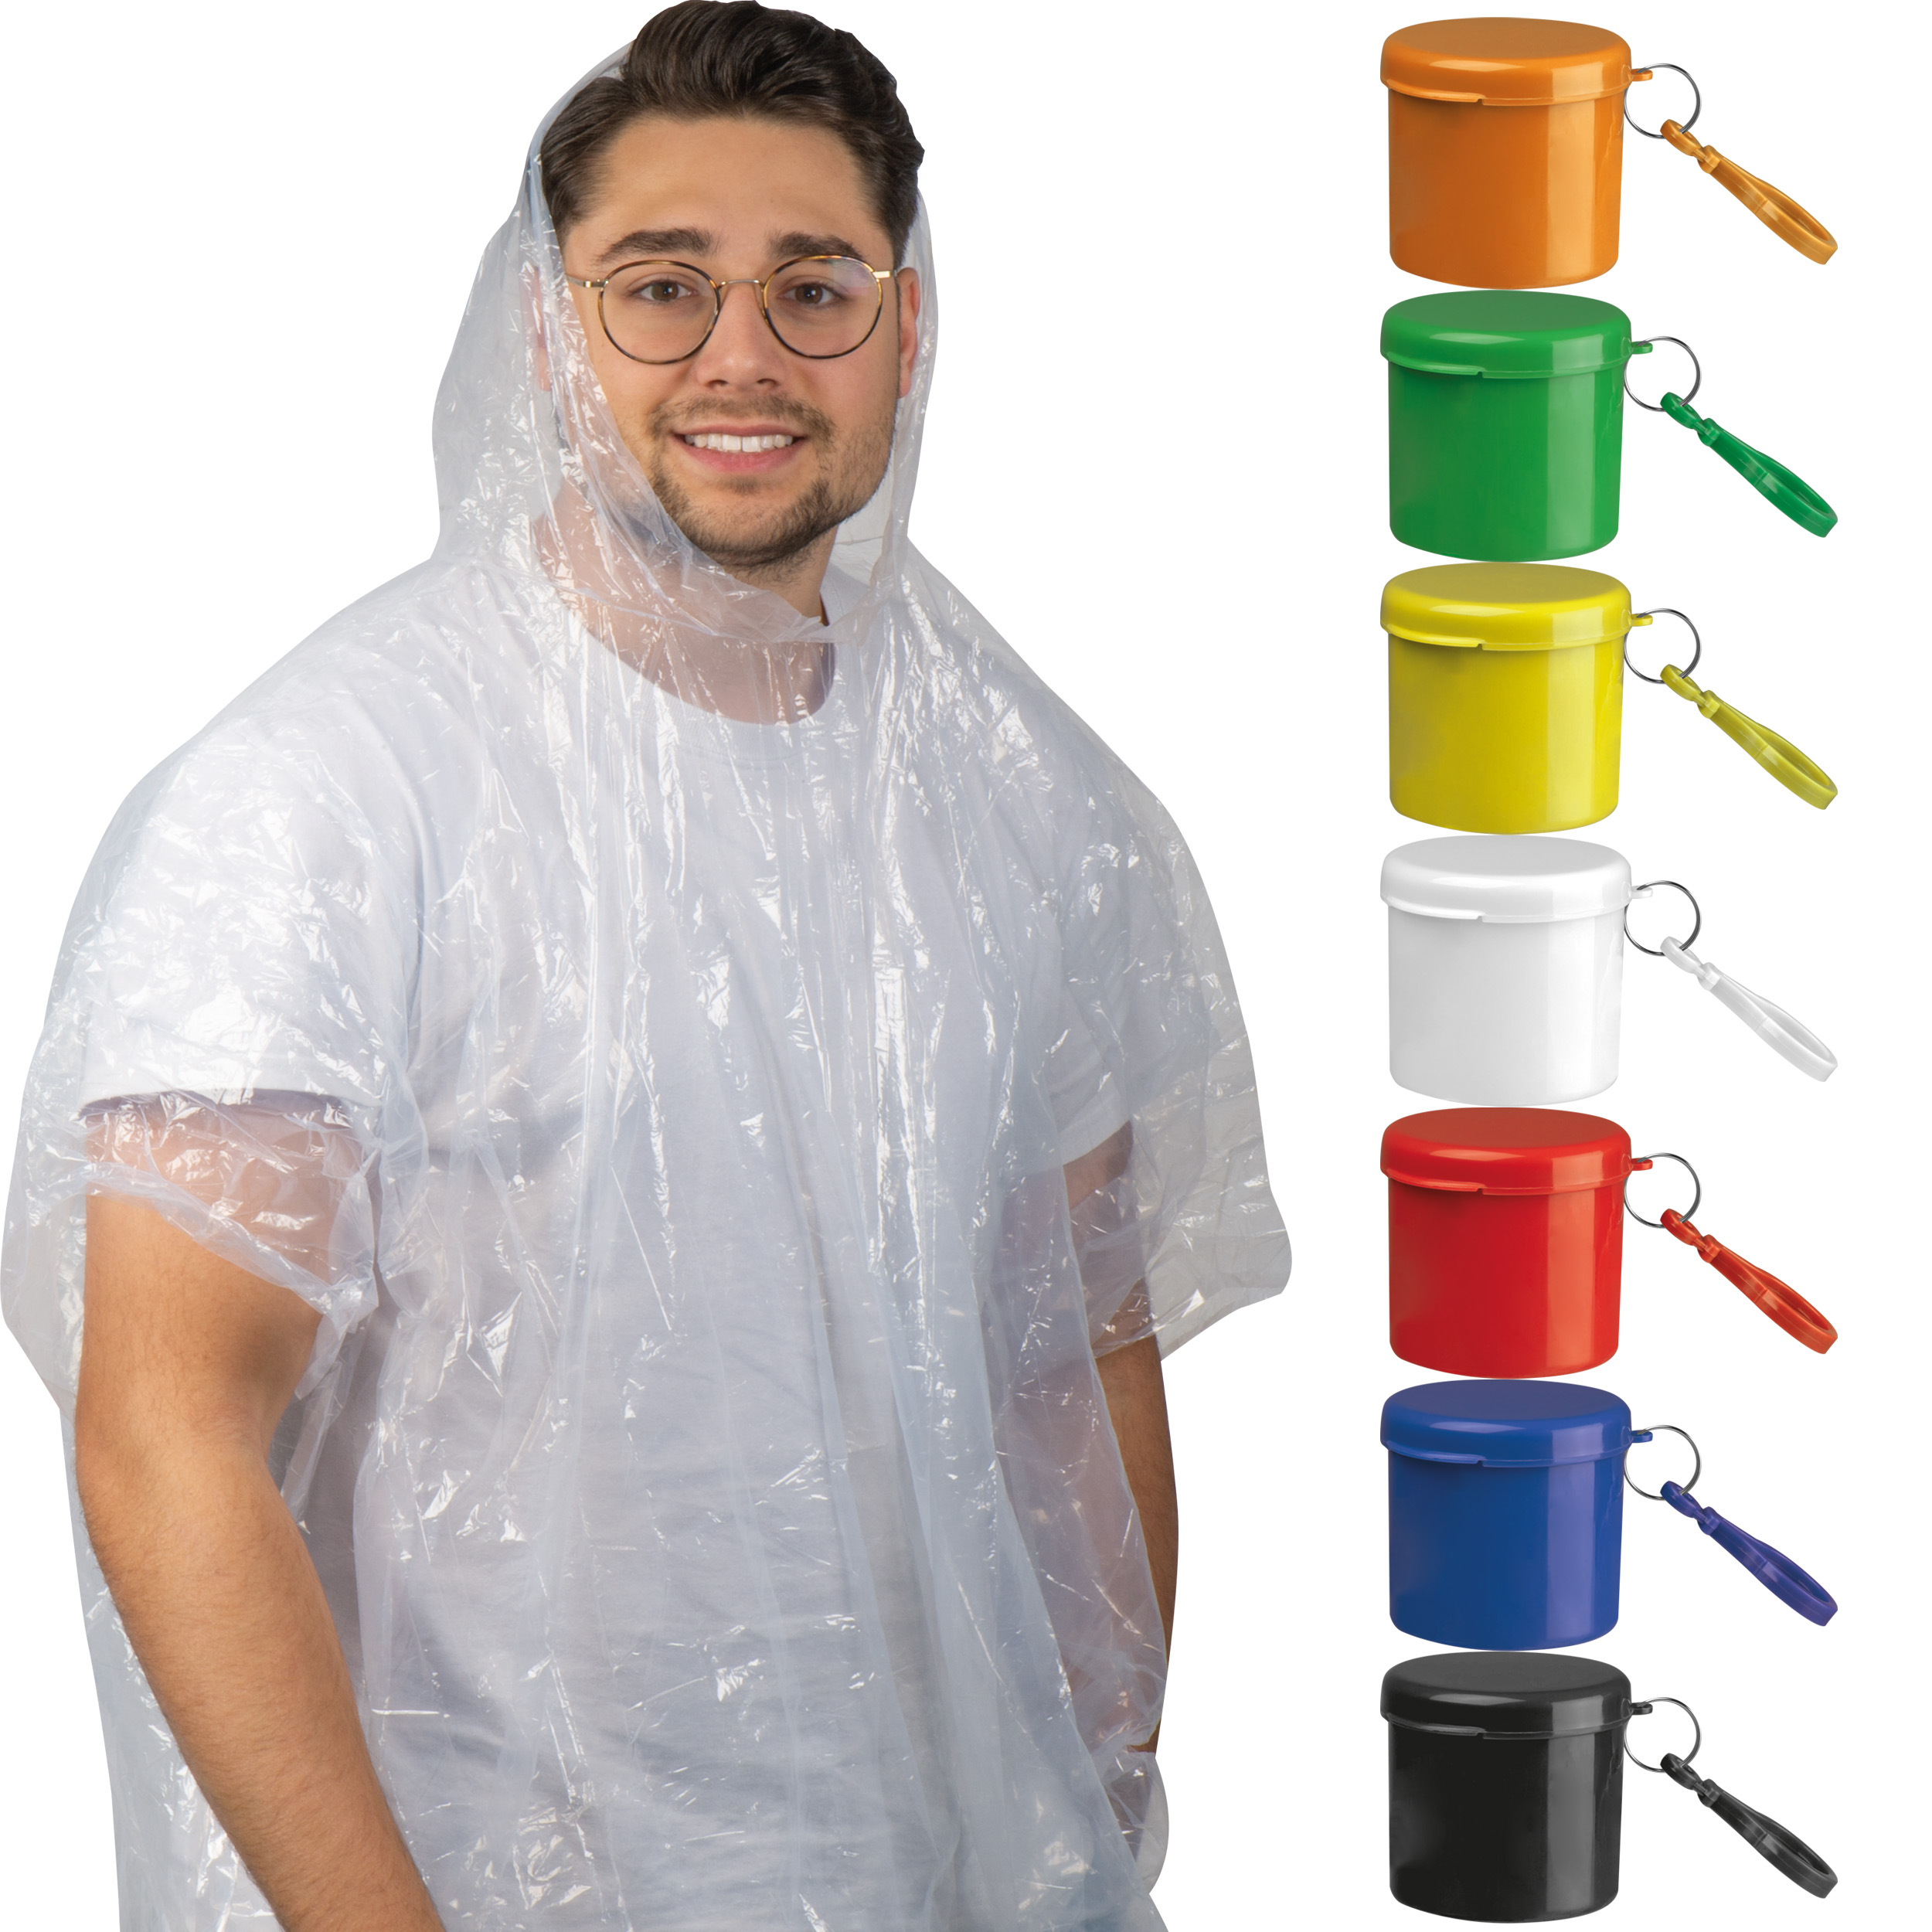 Rainponcho with portable can